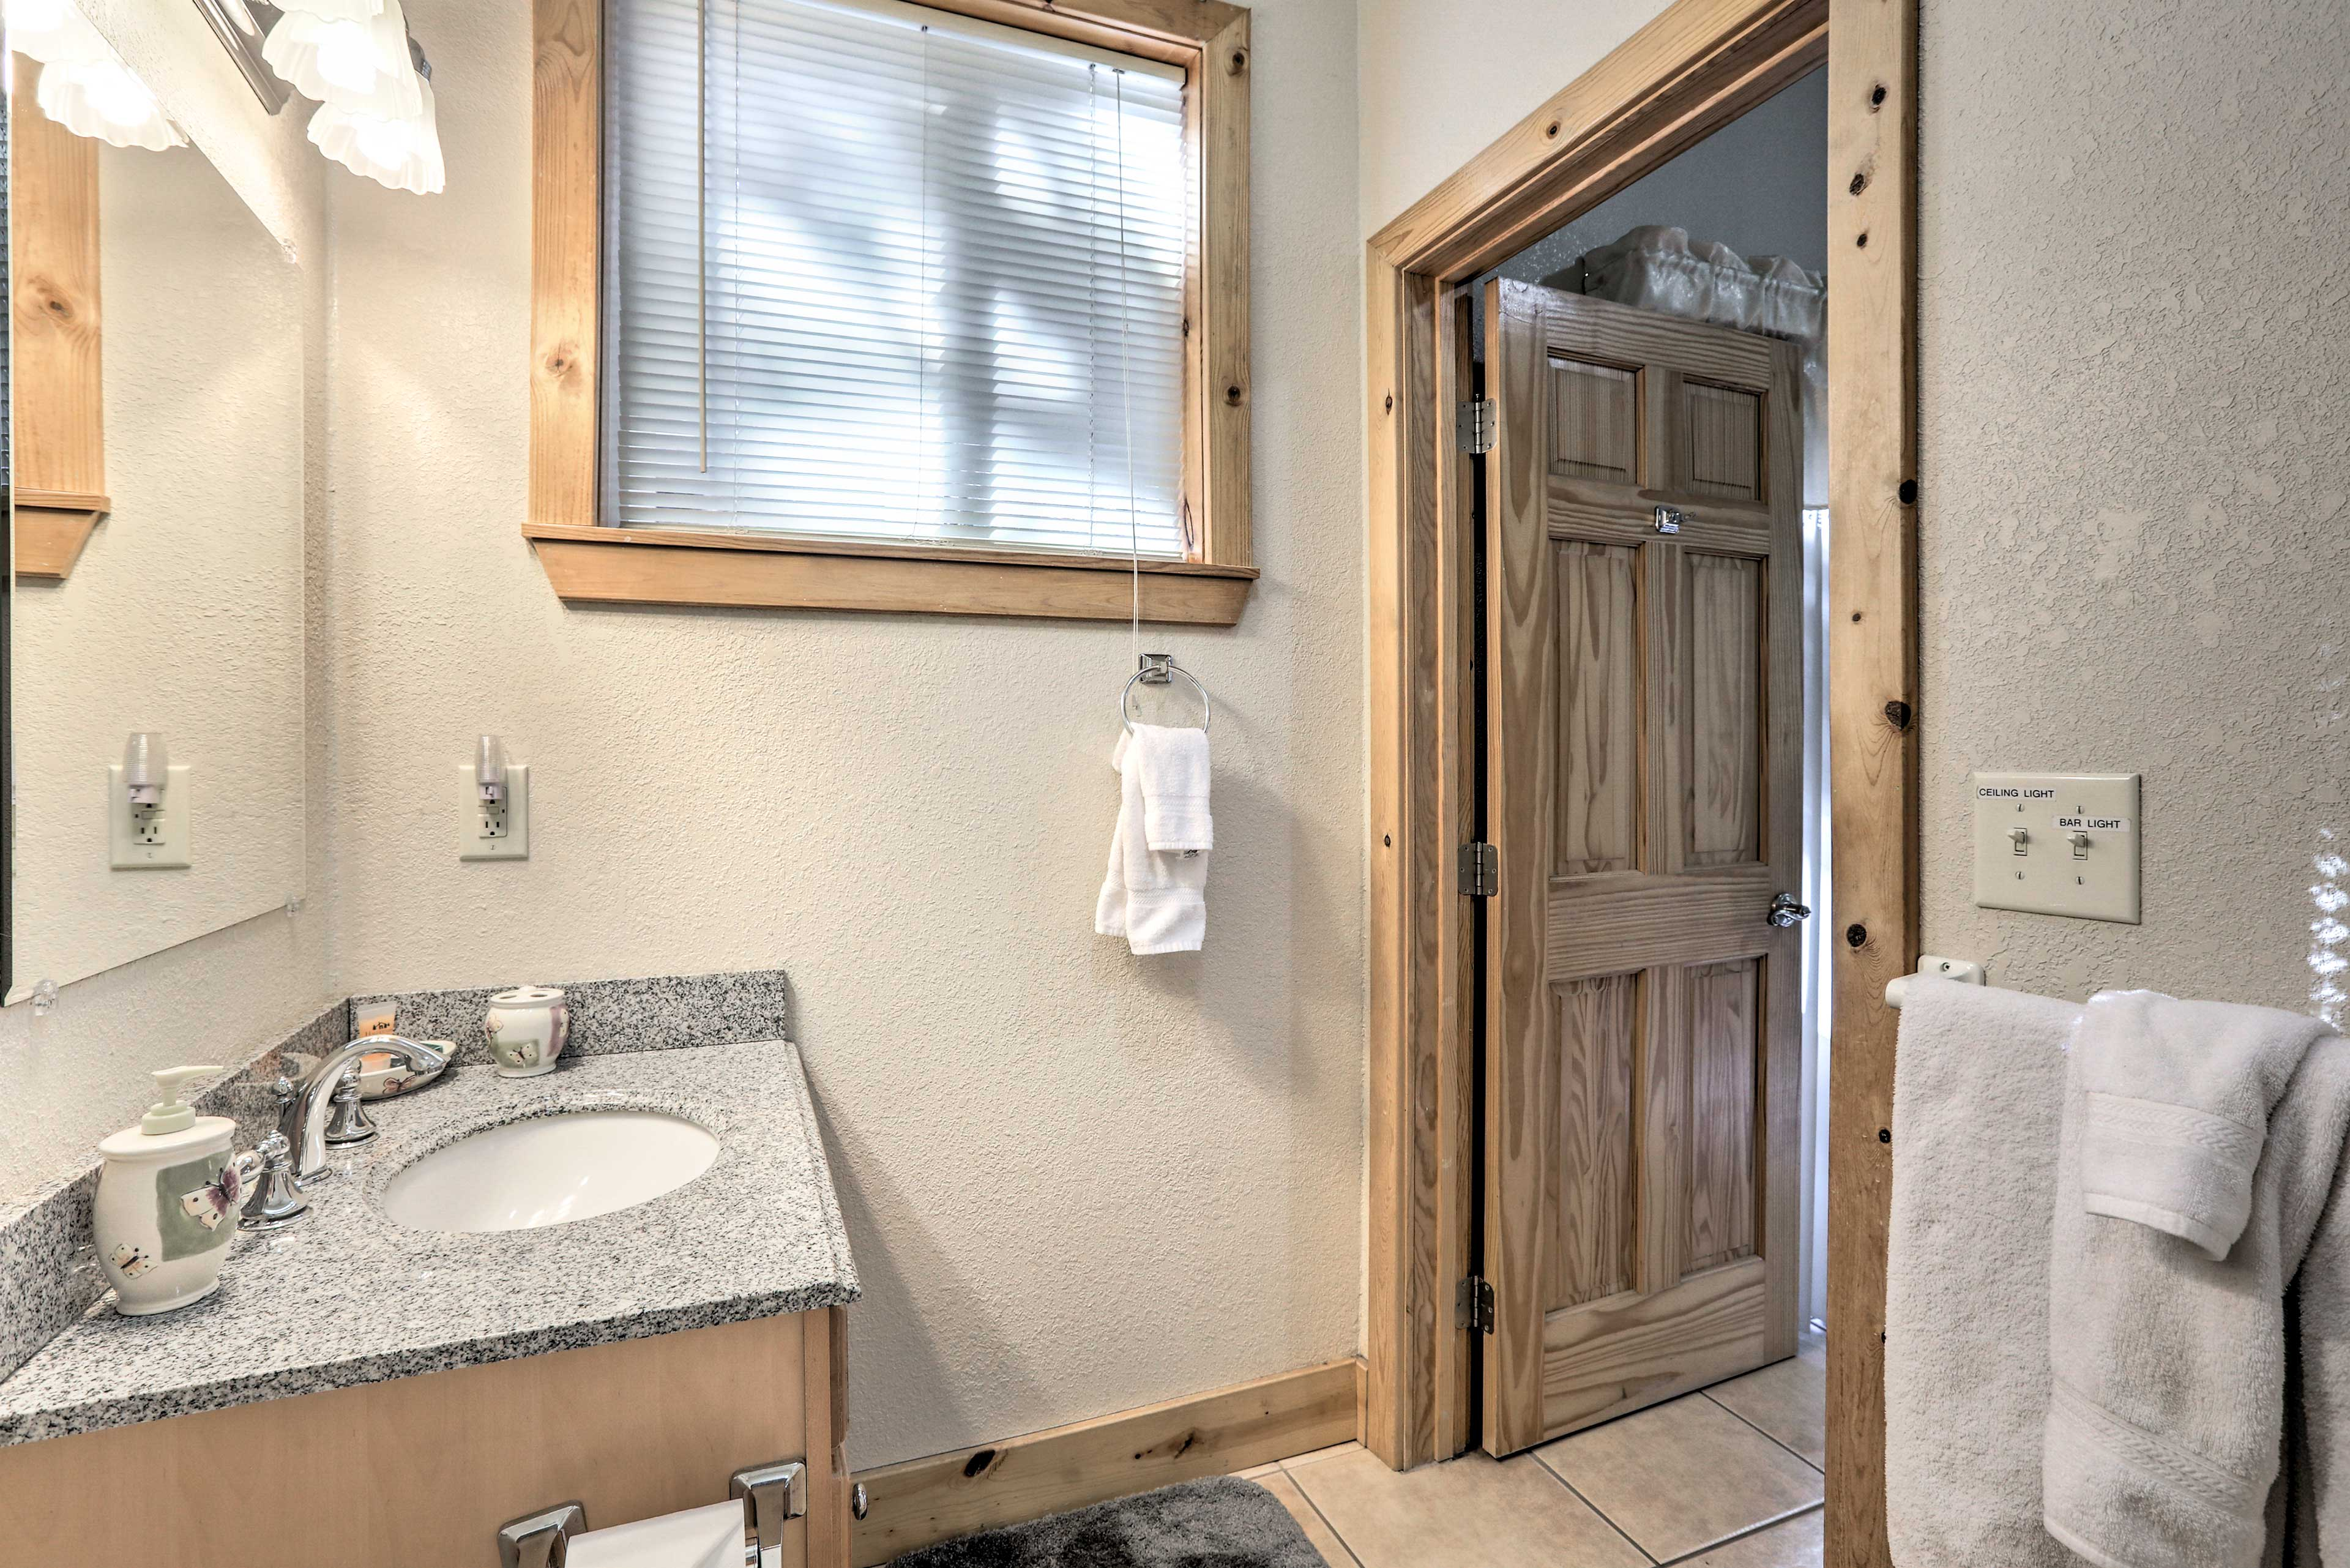 Rinse off after a day on the slopes in this third full bathroom.